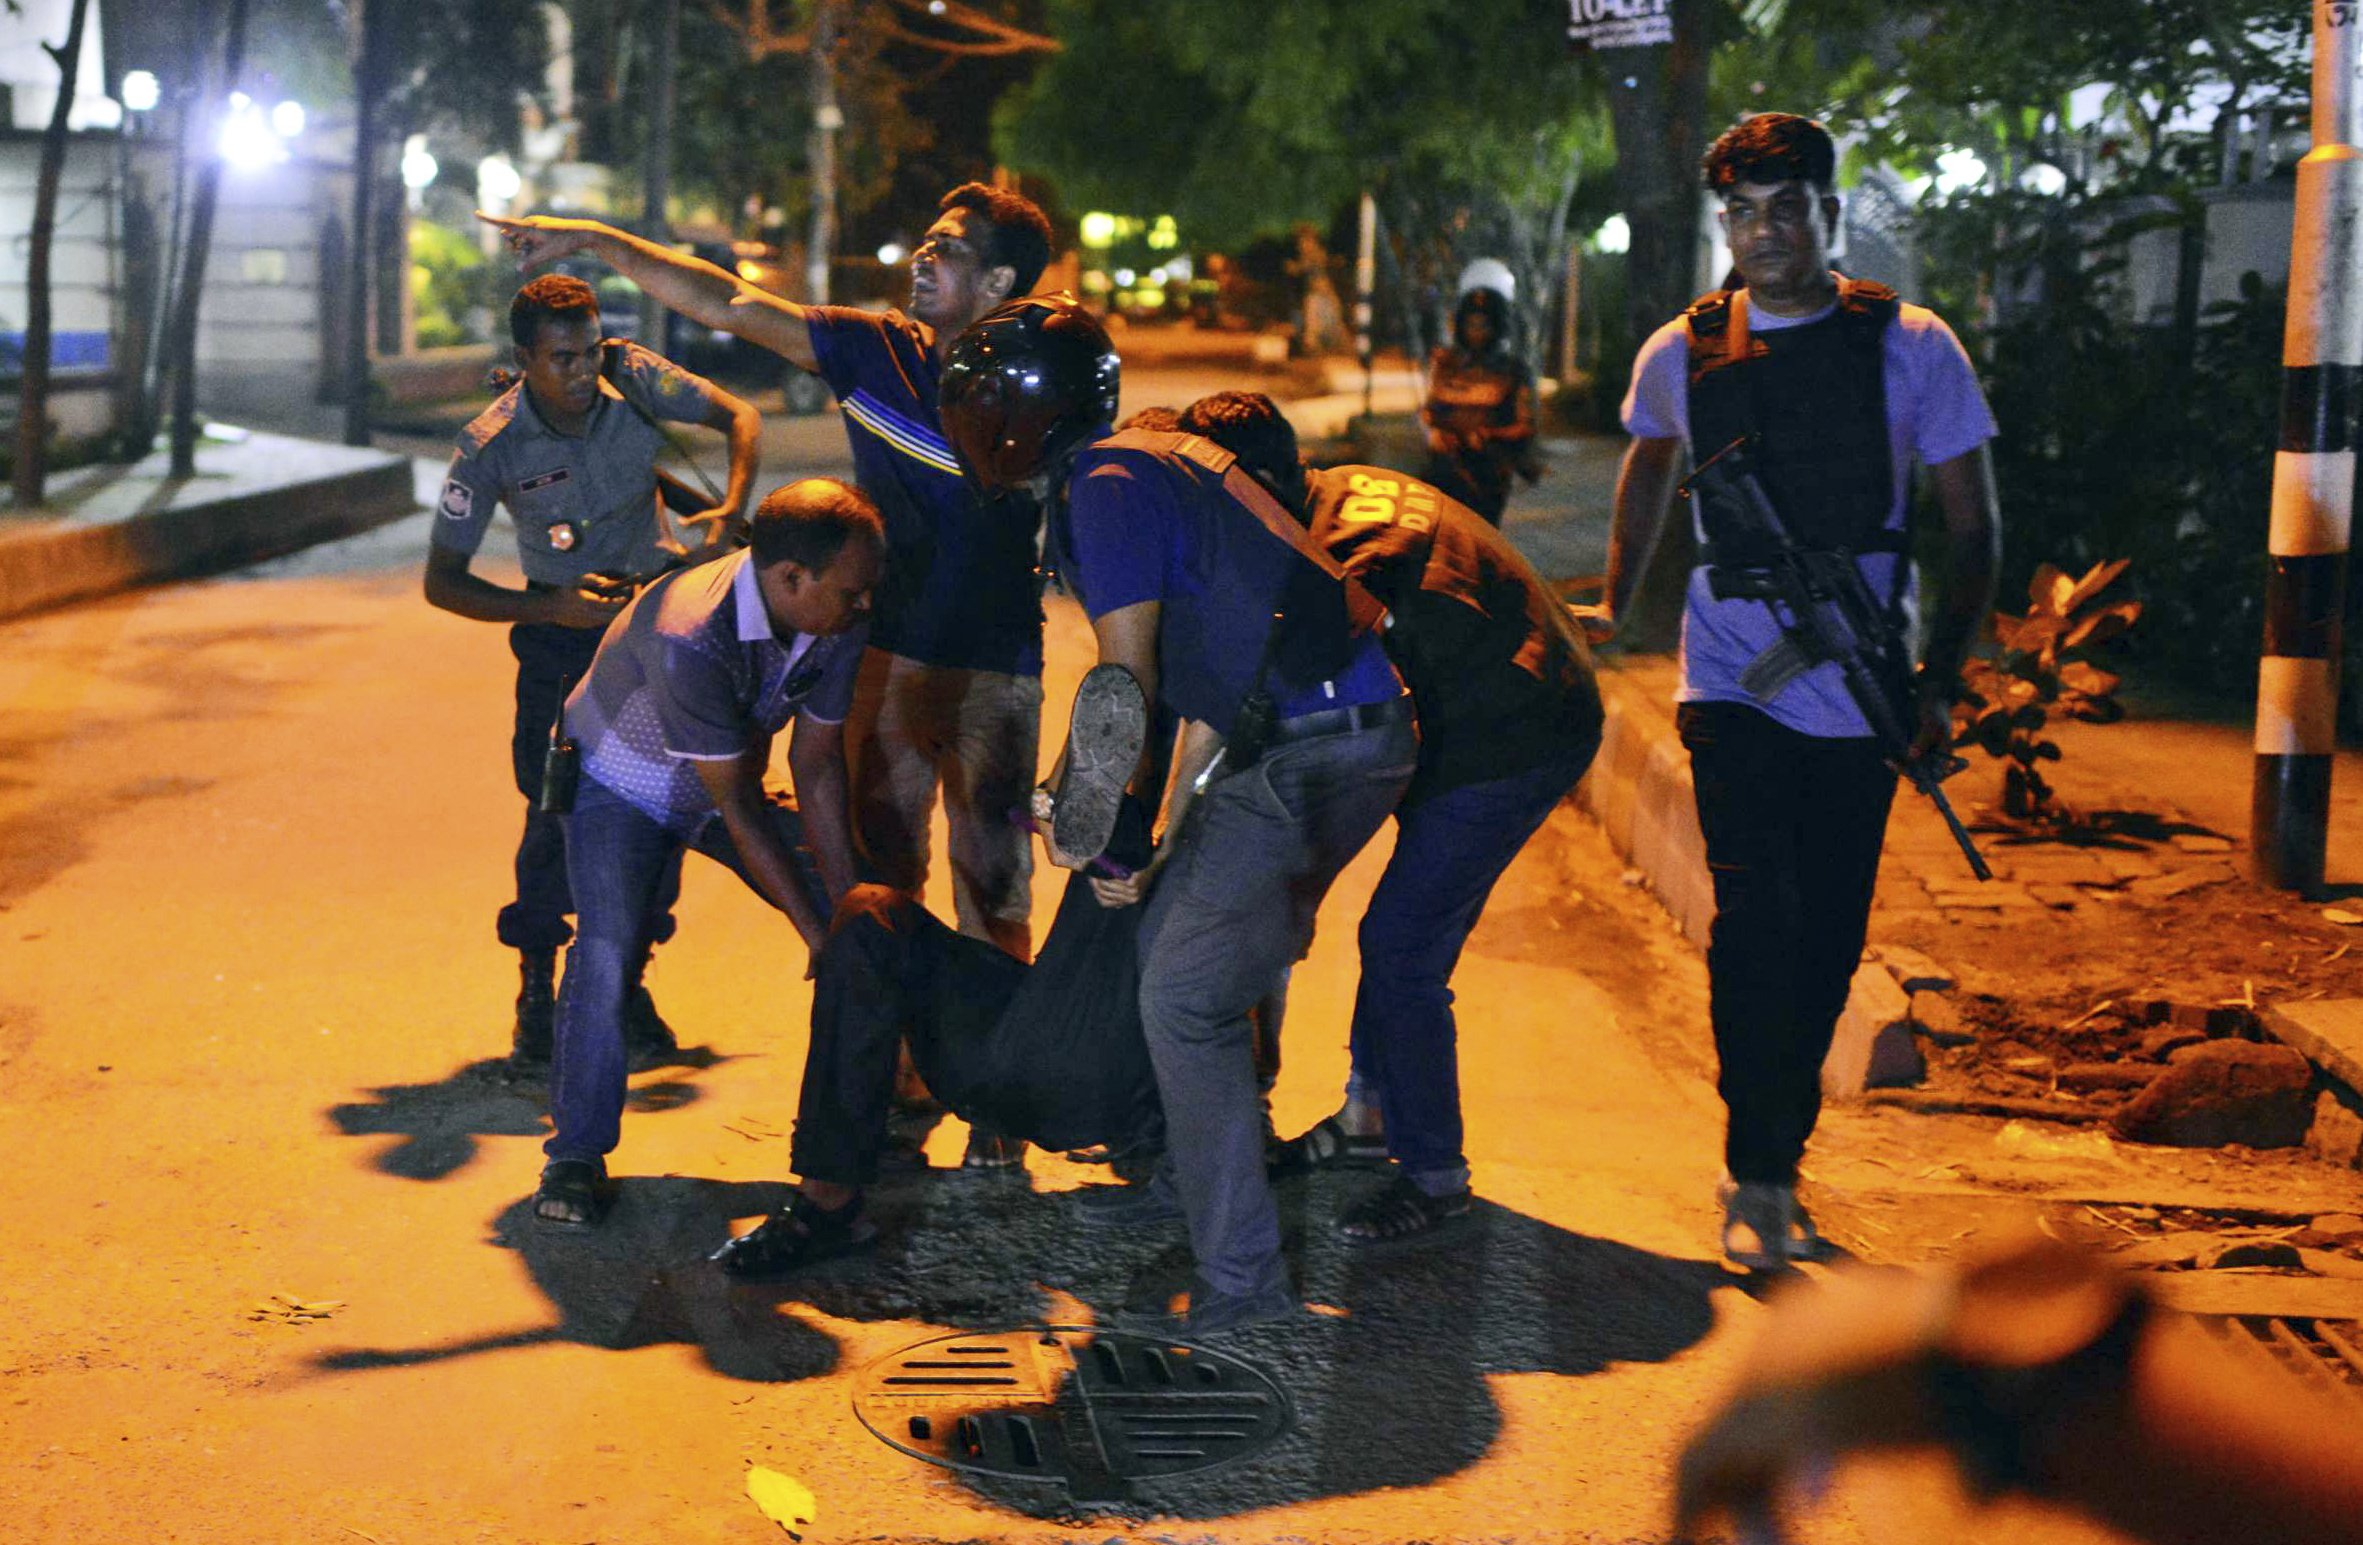 People help an unidentified injured person after a group of gunmen attacked a restaurant popular with foreigners in a diplomatic zone of the Bangladeshi capital of Dhaka on July 1, 2016.